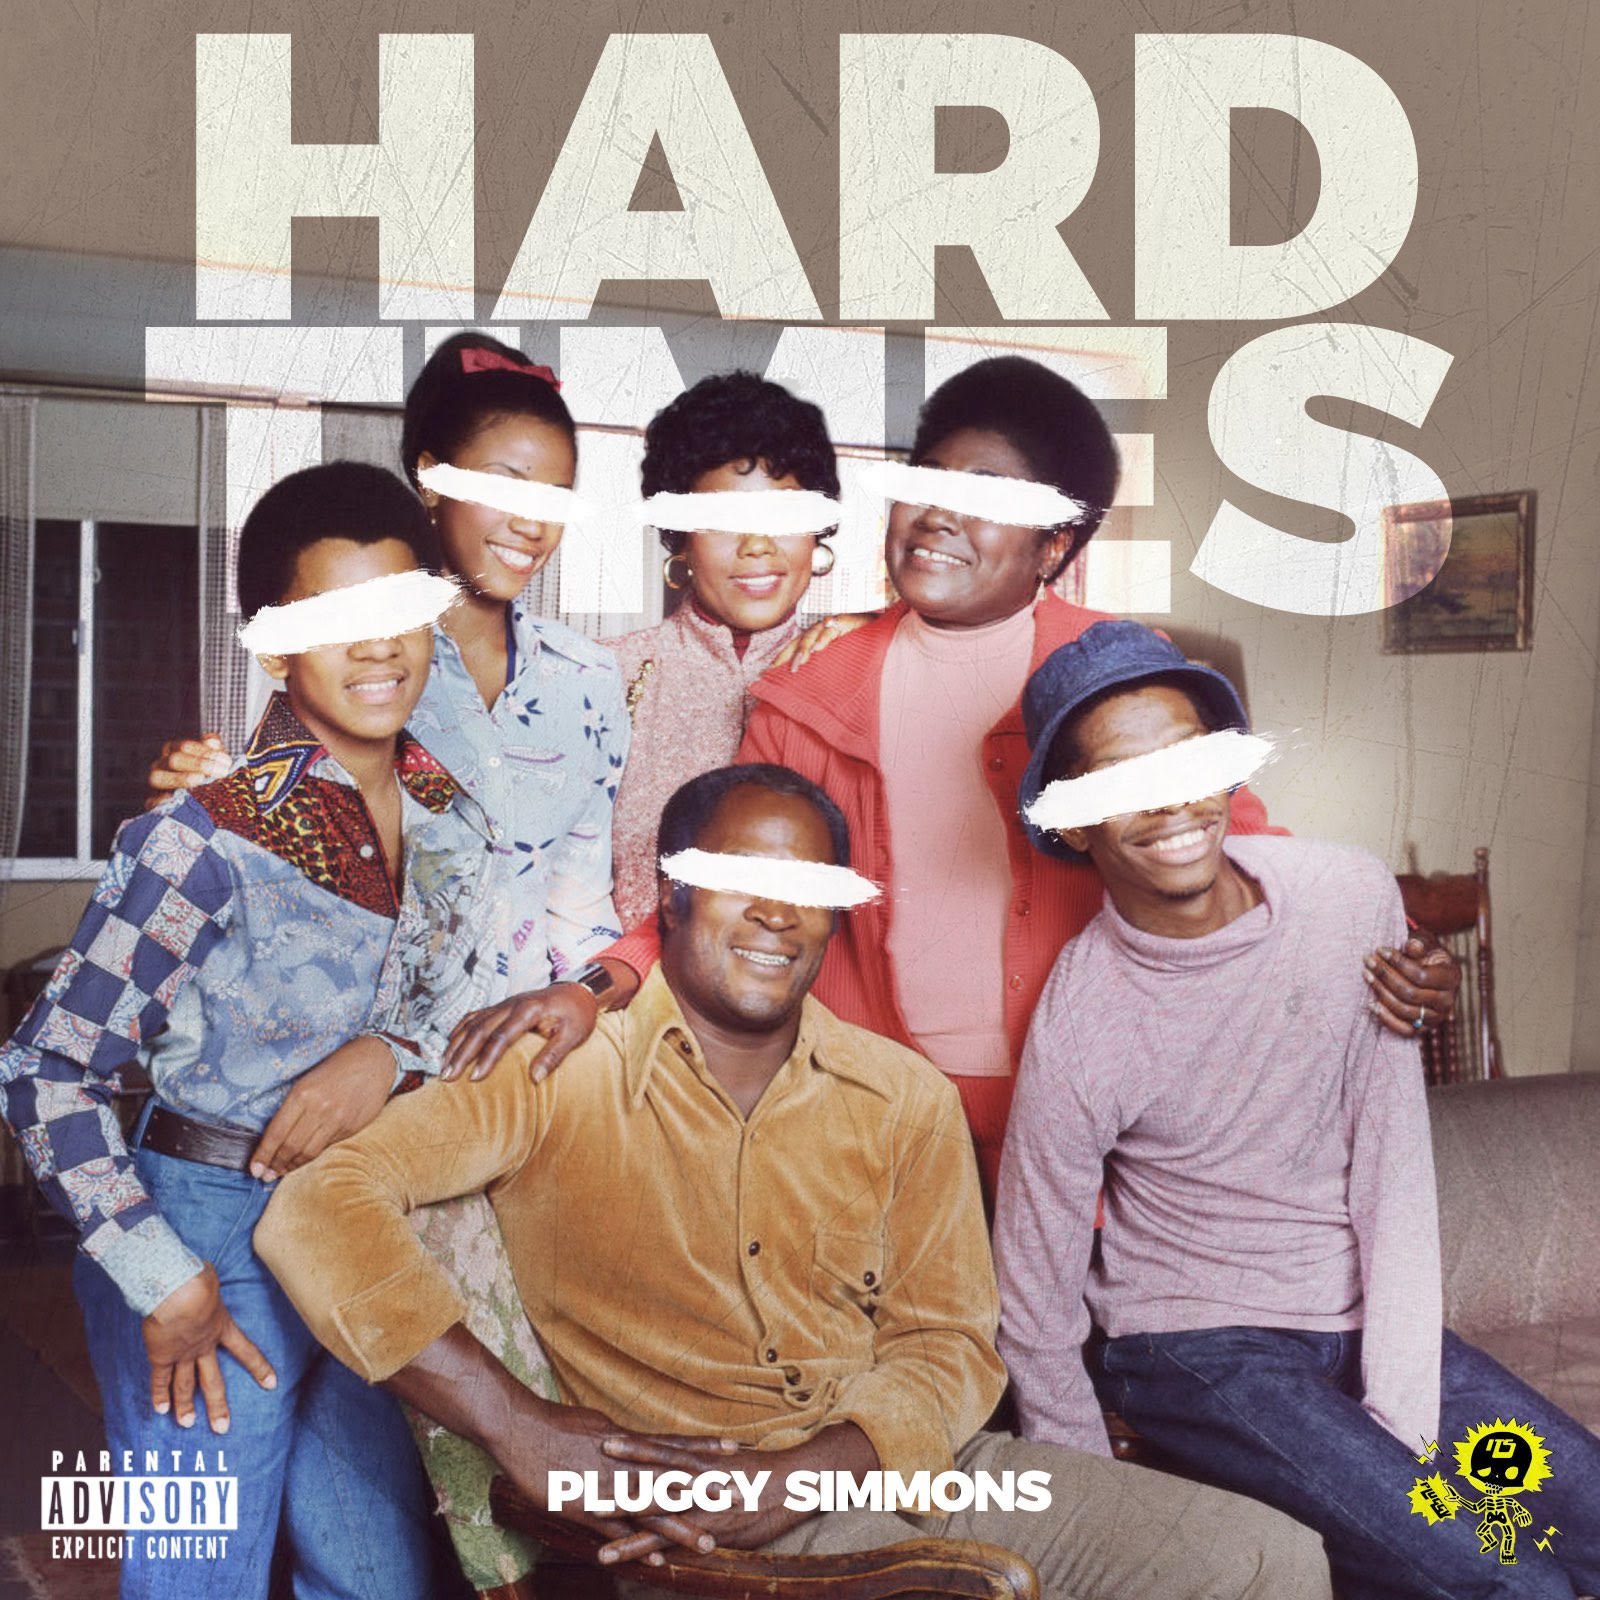 Pluggy Simmons Details 'Hard Times' in New Project